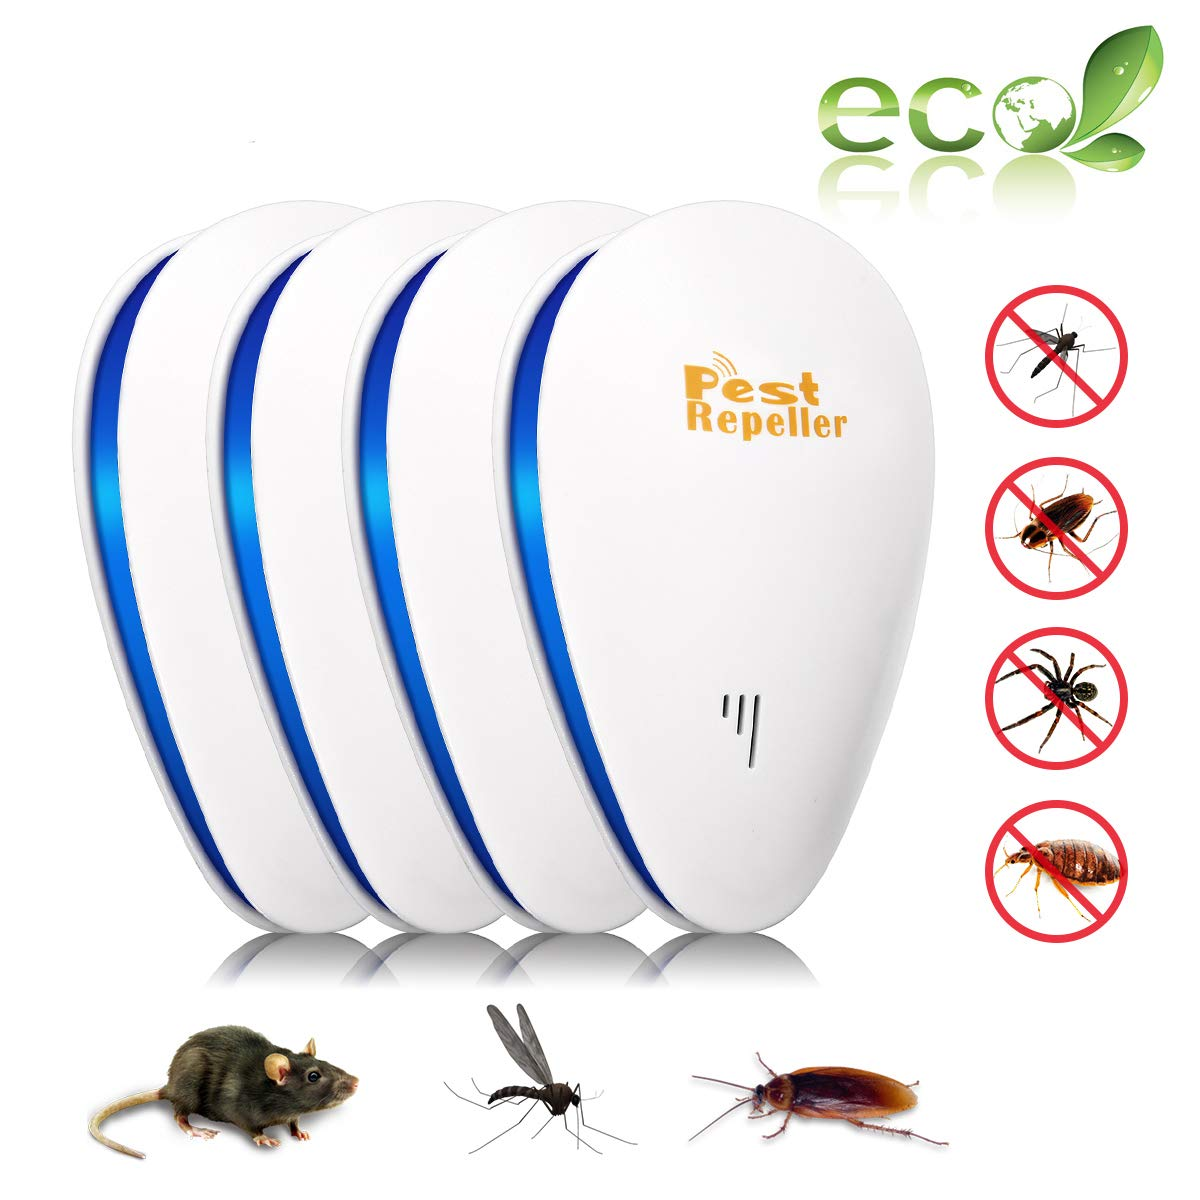 Ultrasonic Pest Repeller CHARMINER Plug in Repellent Indoor/Outdoor for Mosquitoes Mice Ants Rats Roaches Spiders Bugs Flies Rodents - Eco-Friendly Human & Pet Safe Pest Warrior (4 Pack) CHARMINERbesttoanywhere2076